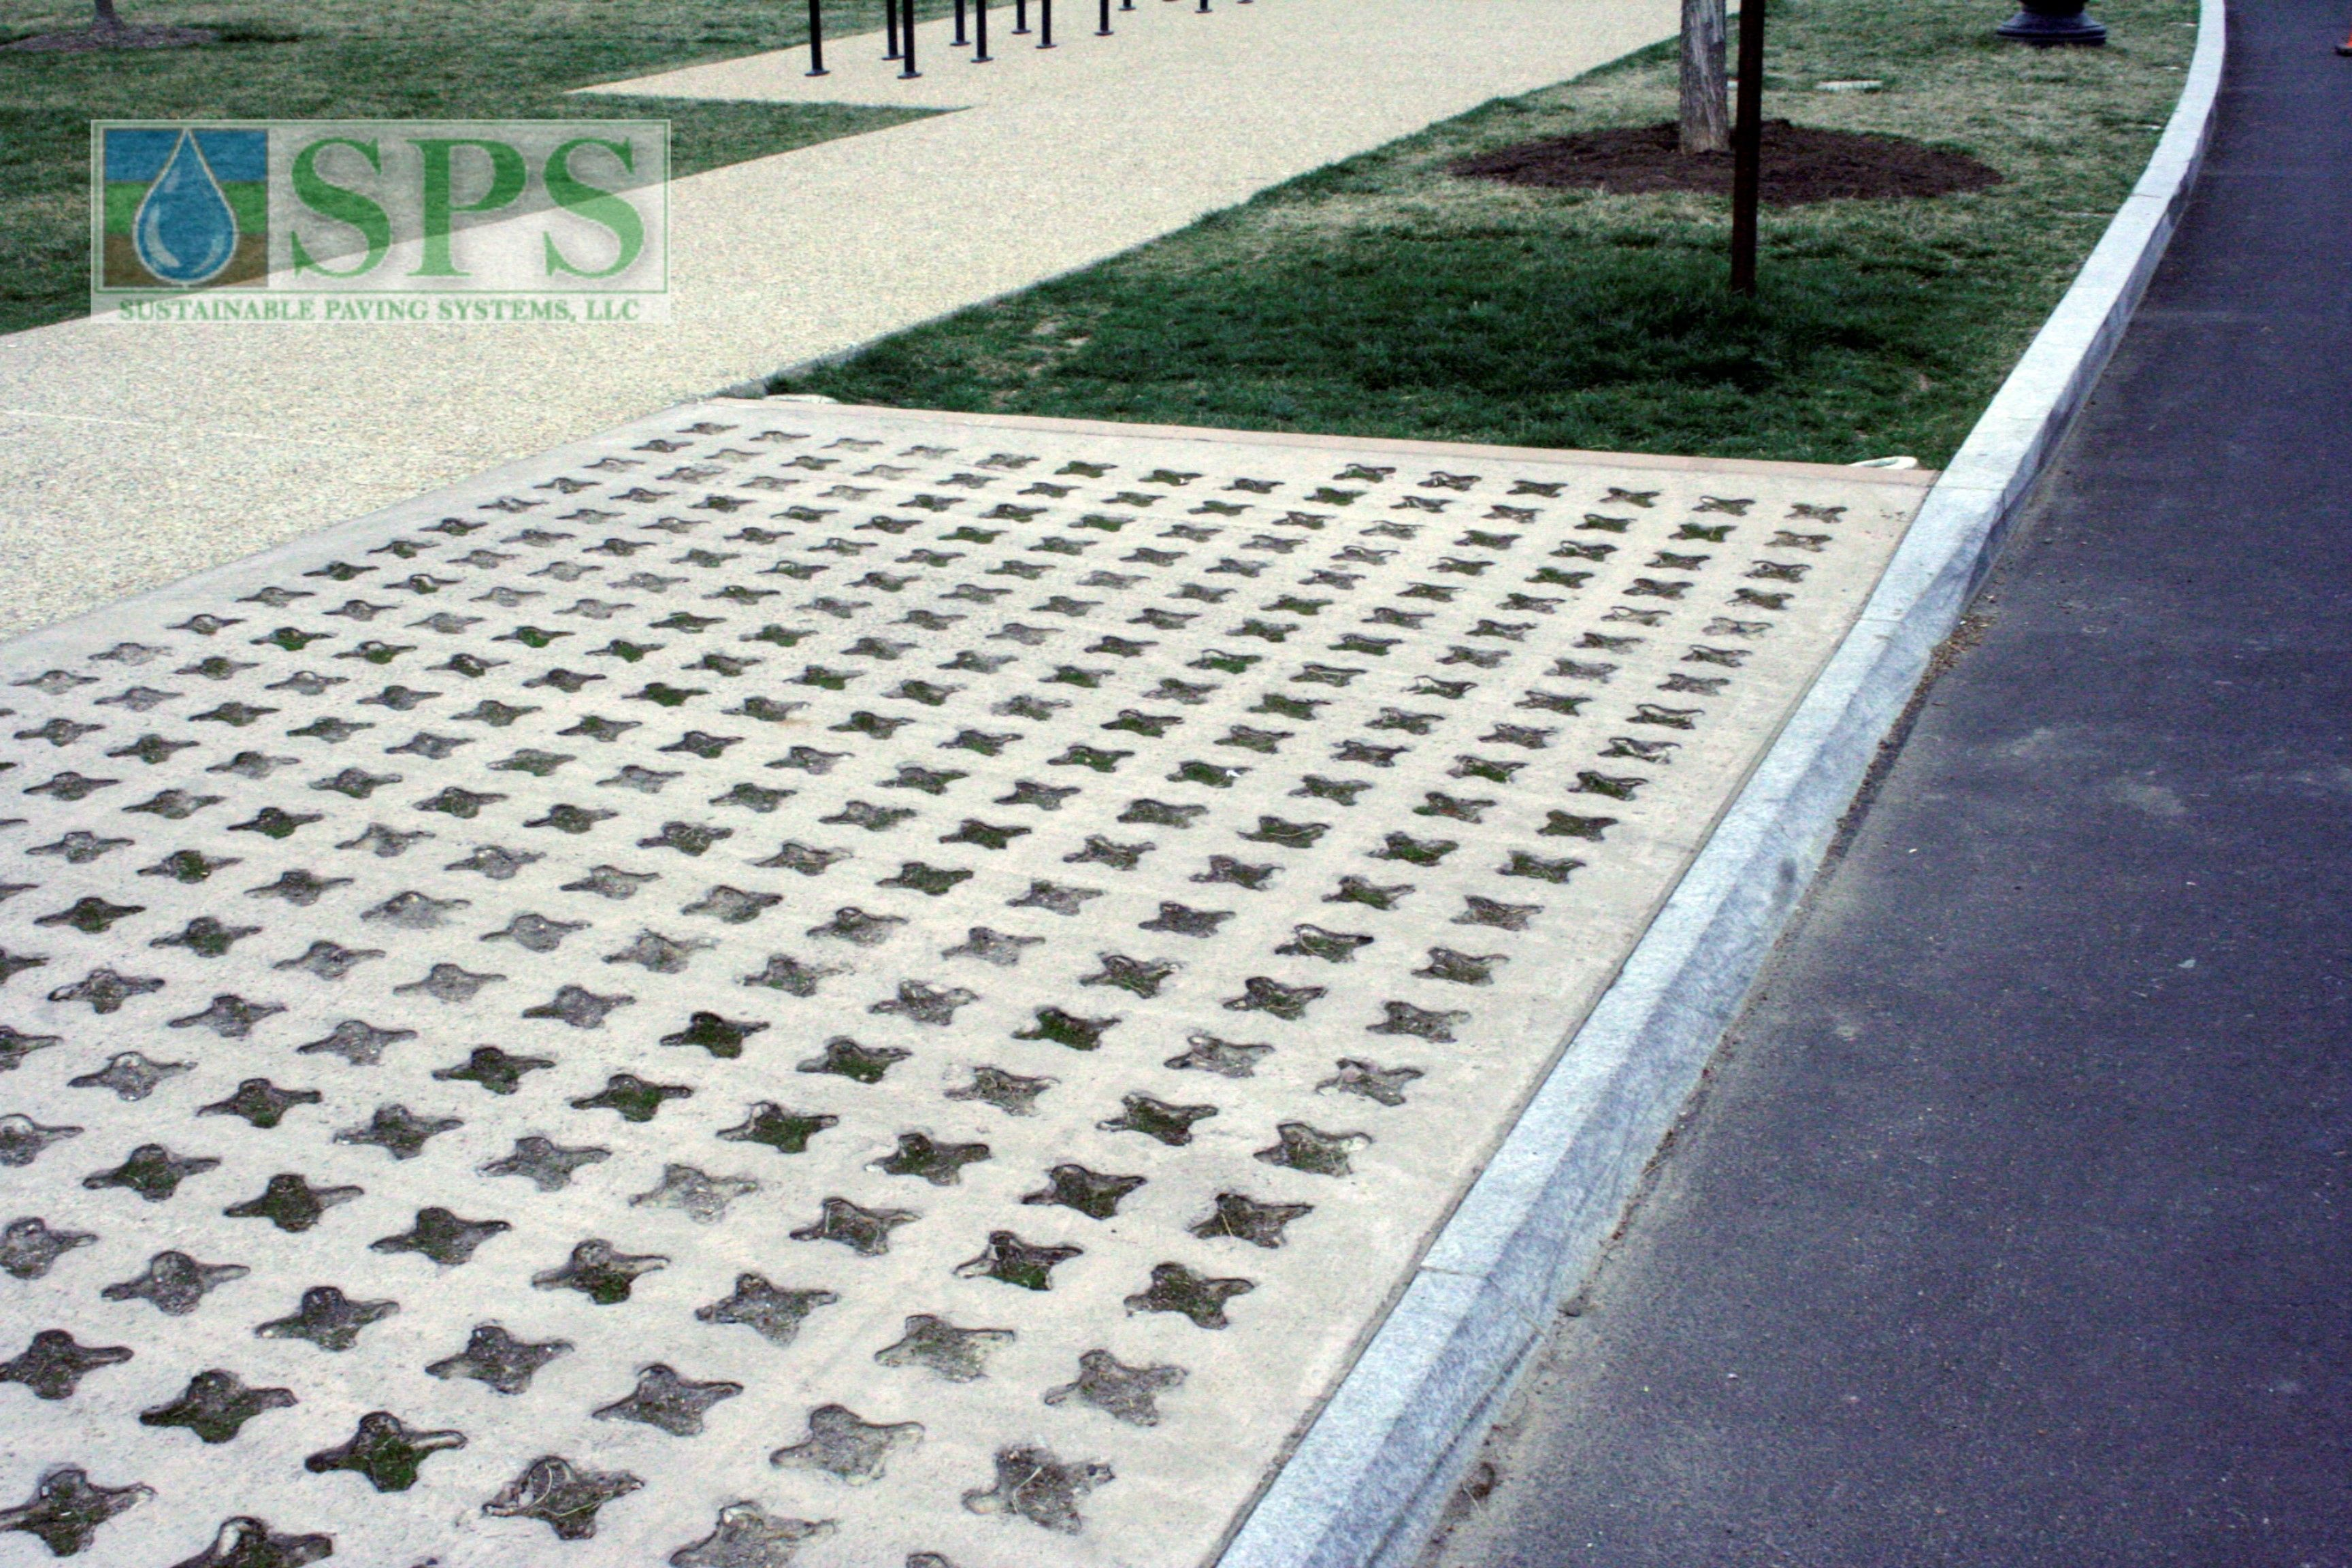 Grasscrete Partially Conceealed System At Mlk National Memorial View Of Vehicle Access_05